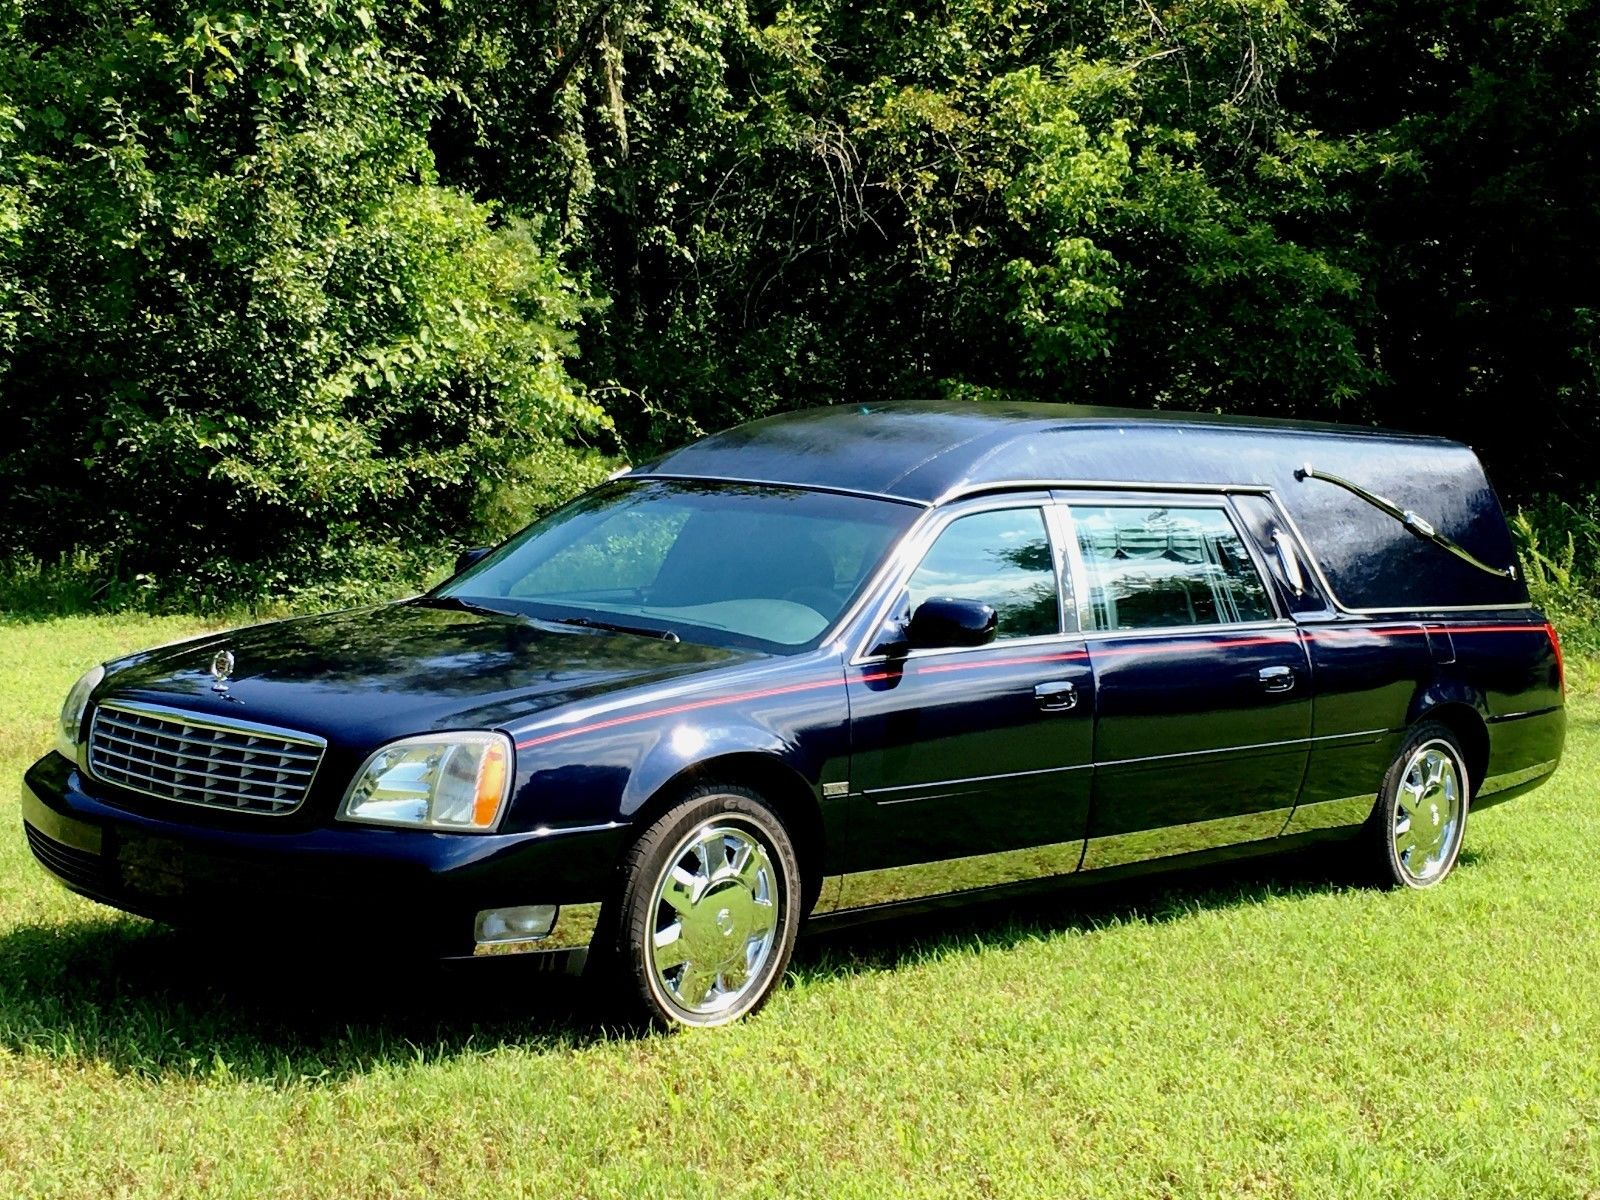 Laser Straight Cadillac Deville Eagle Hearse For Sale on 2004 Cadillac Escalade